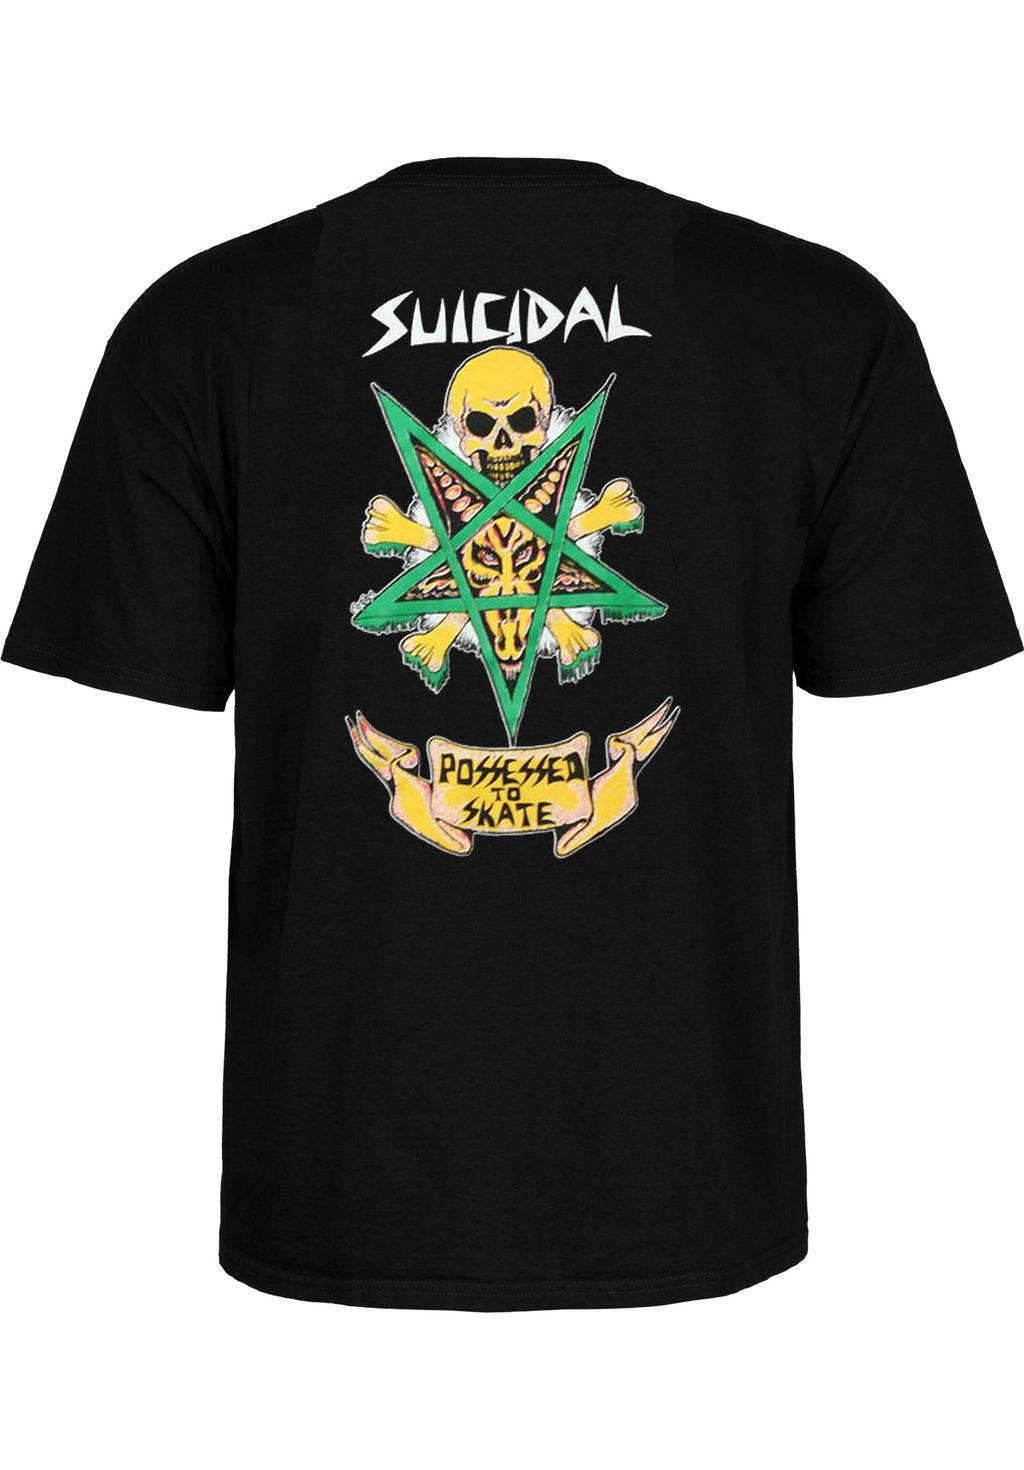 DOGTOWN X SUICIDAL TENDENCIES 'Possessed To Skate' T-Shirt, black